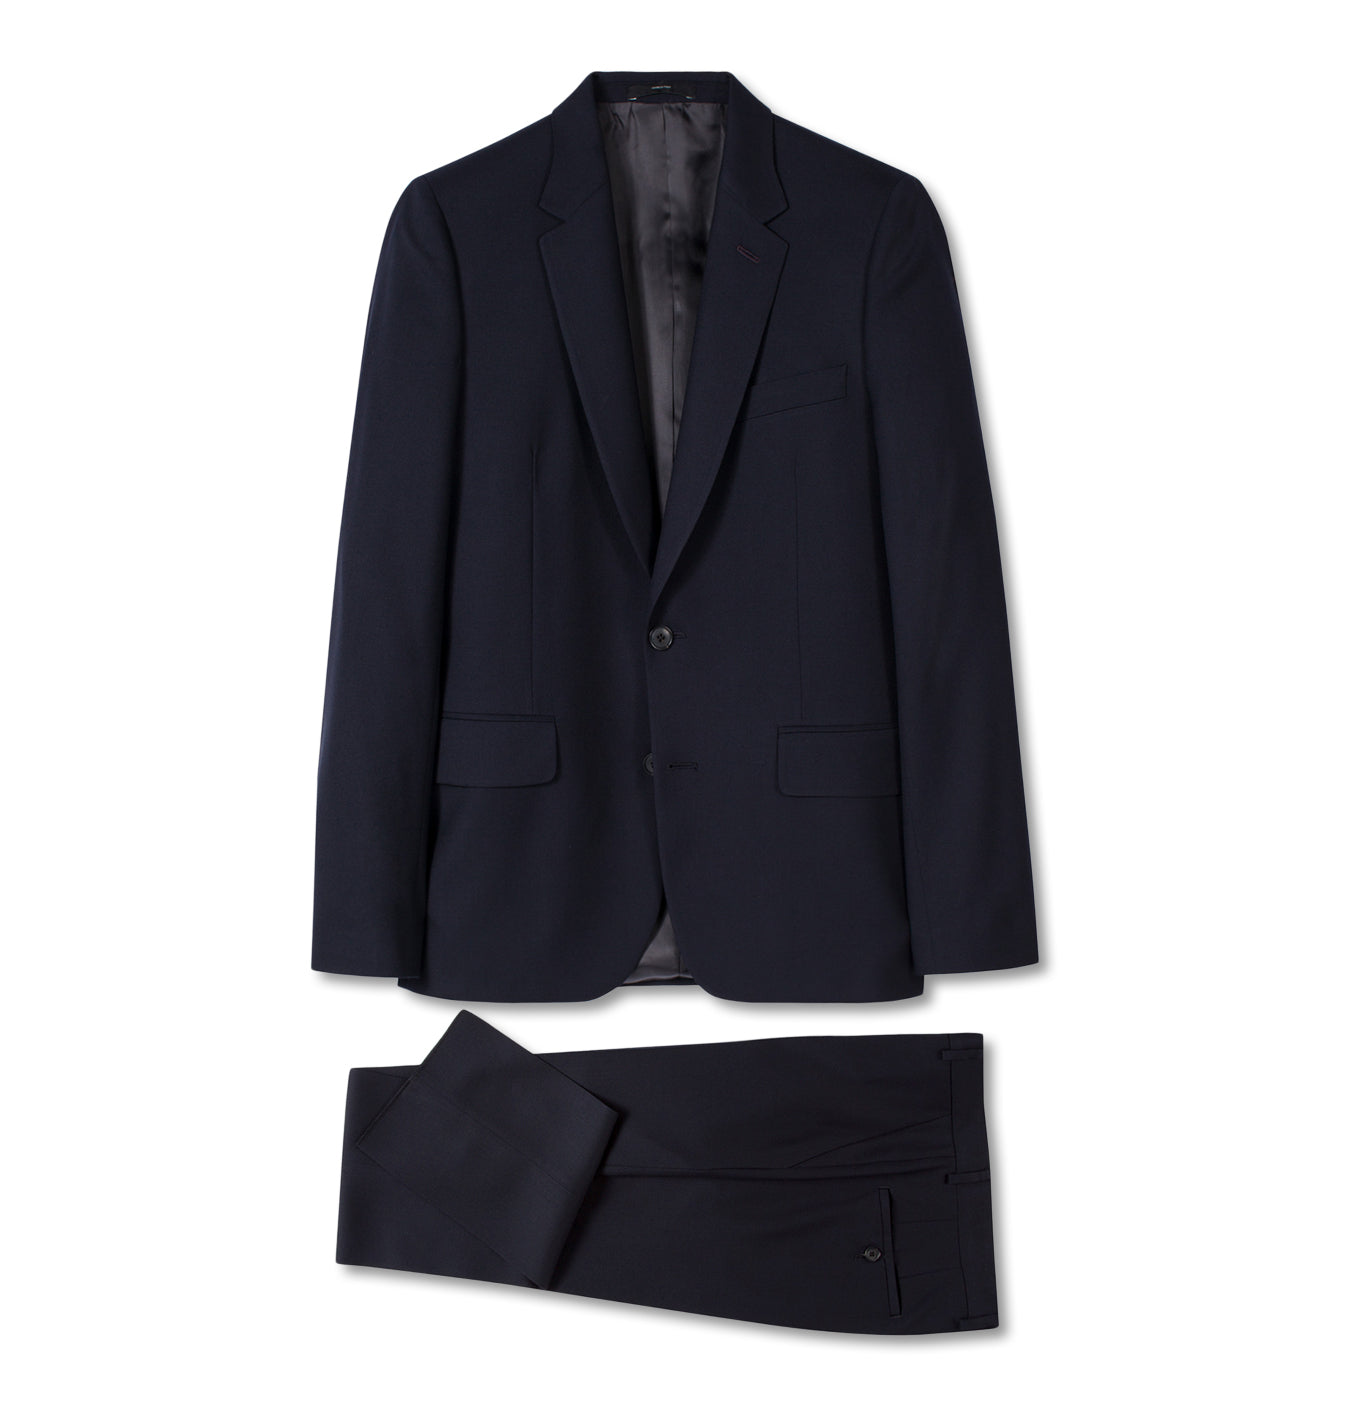 Gents Tailored Fit Travel Suit Navy